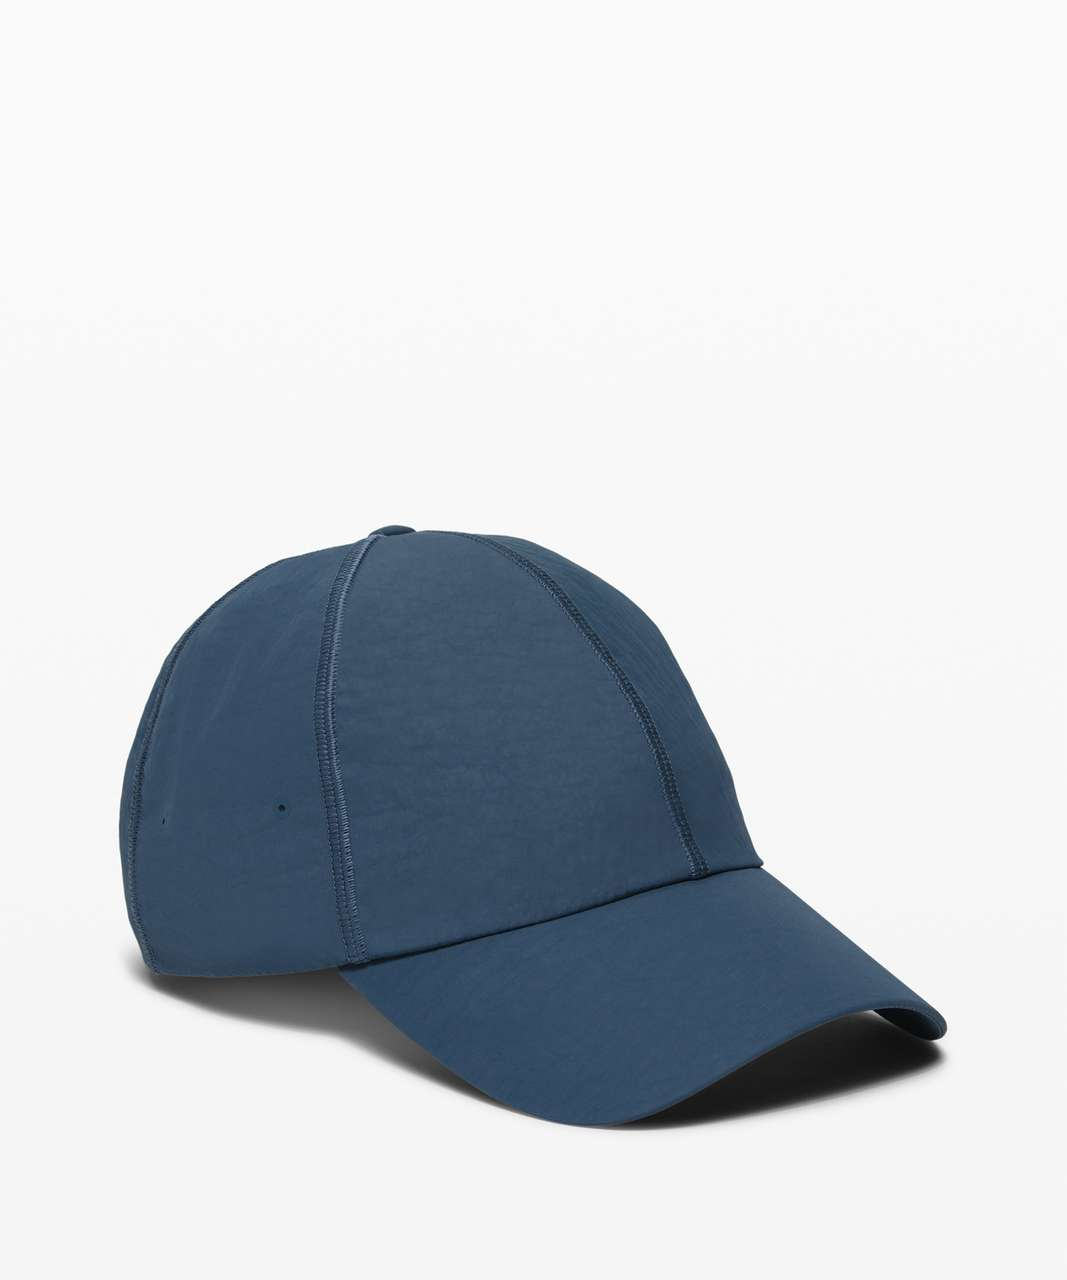 Lululemon Baller Hat II *Soft - Ink Blue